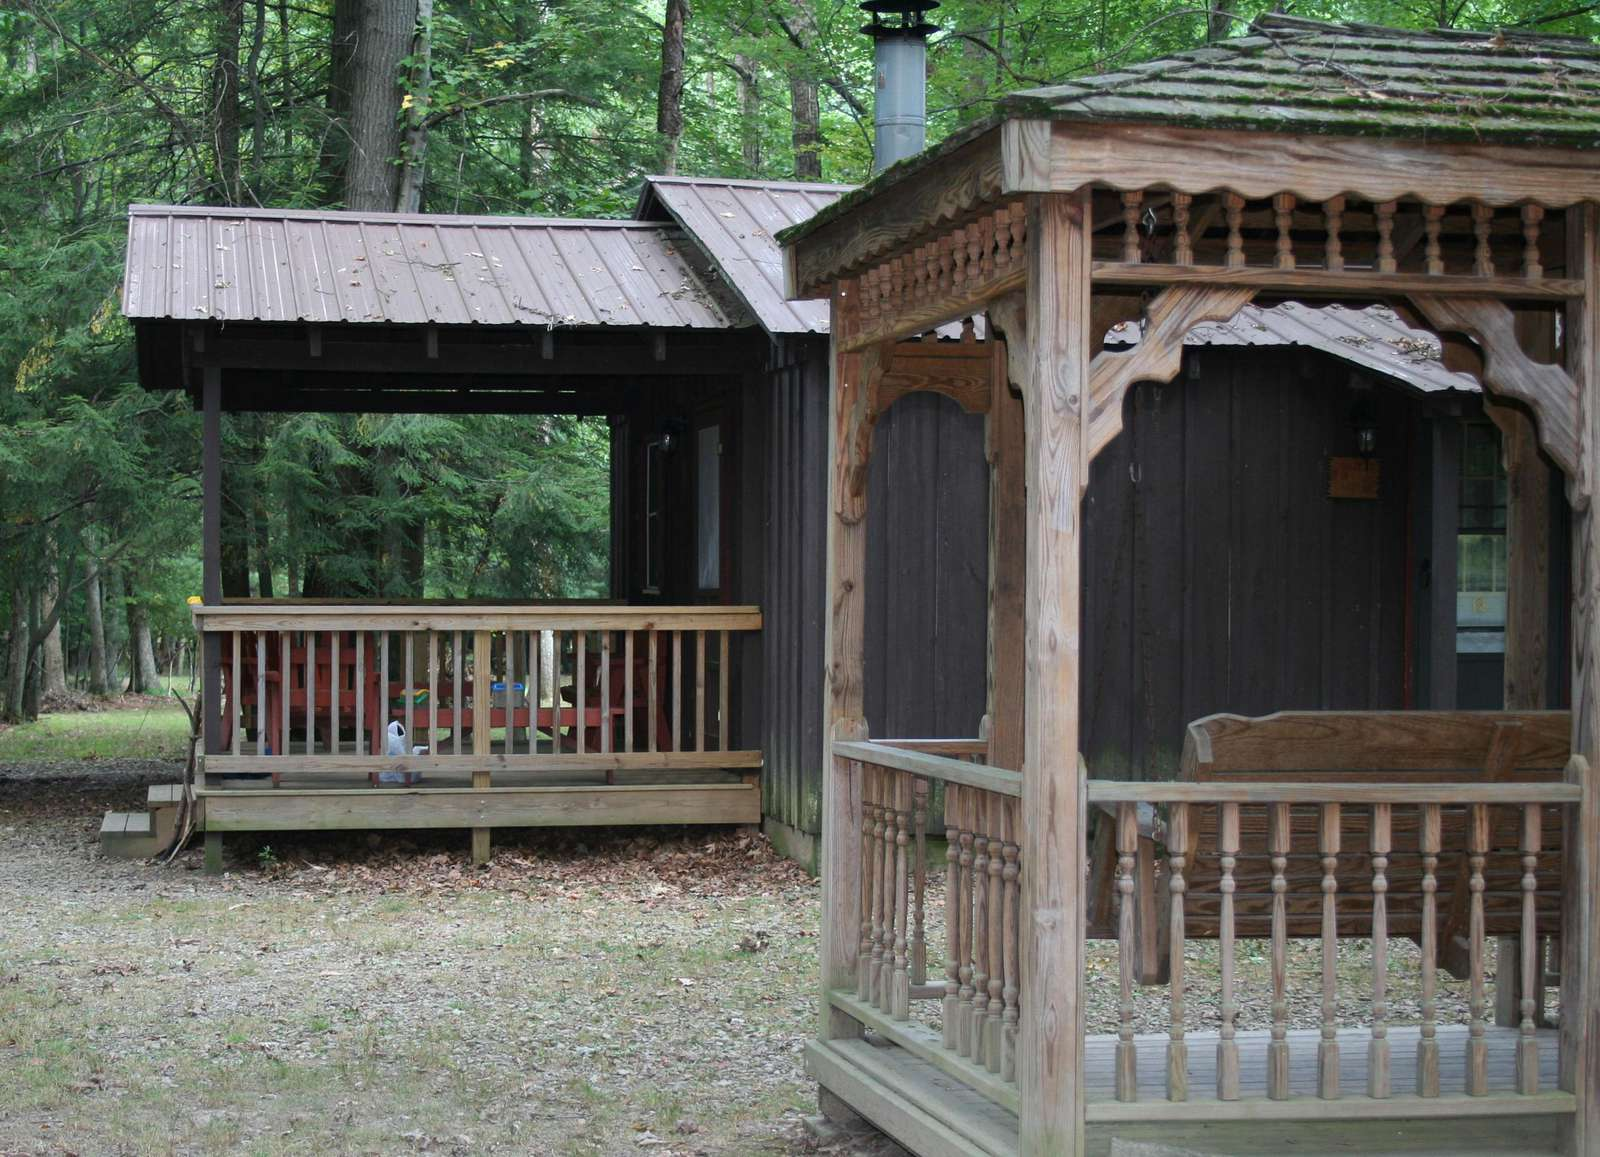 Douglas Fir Back Porch and Gazebo